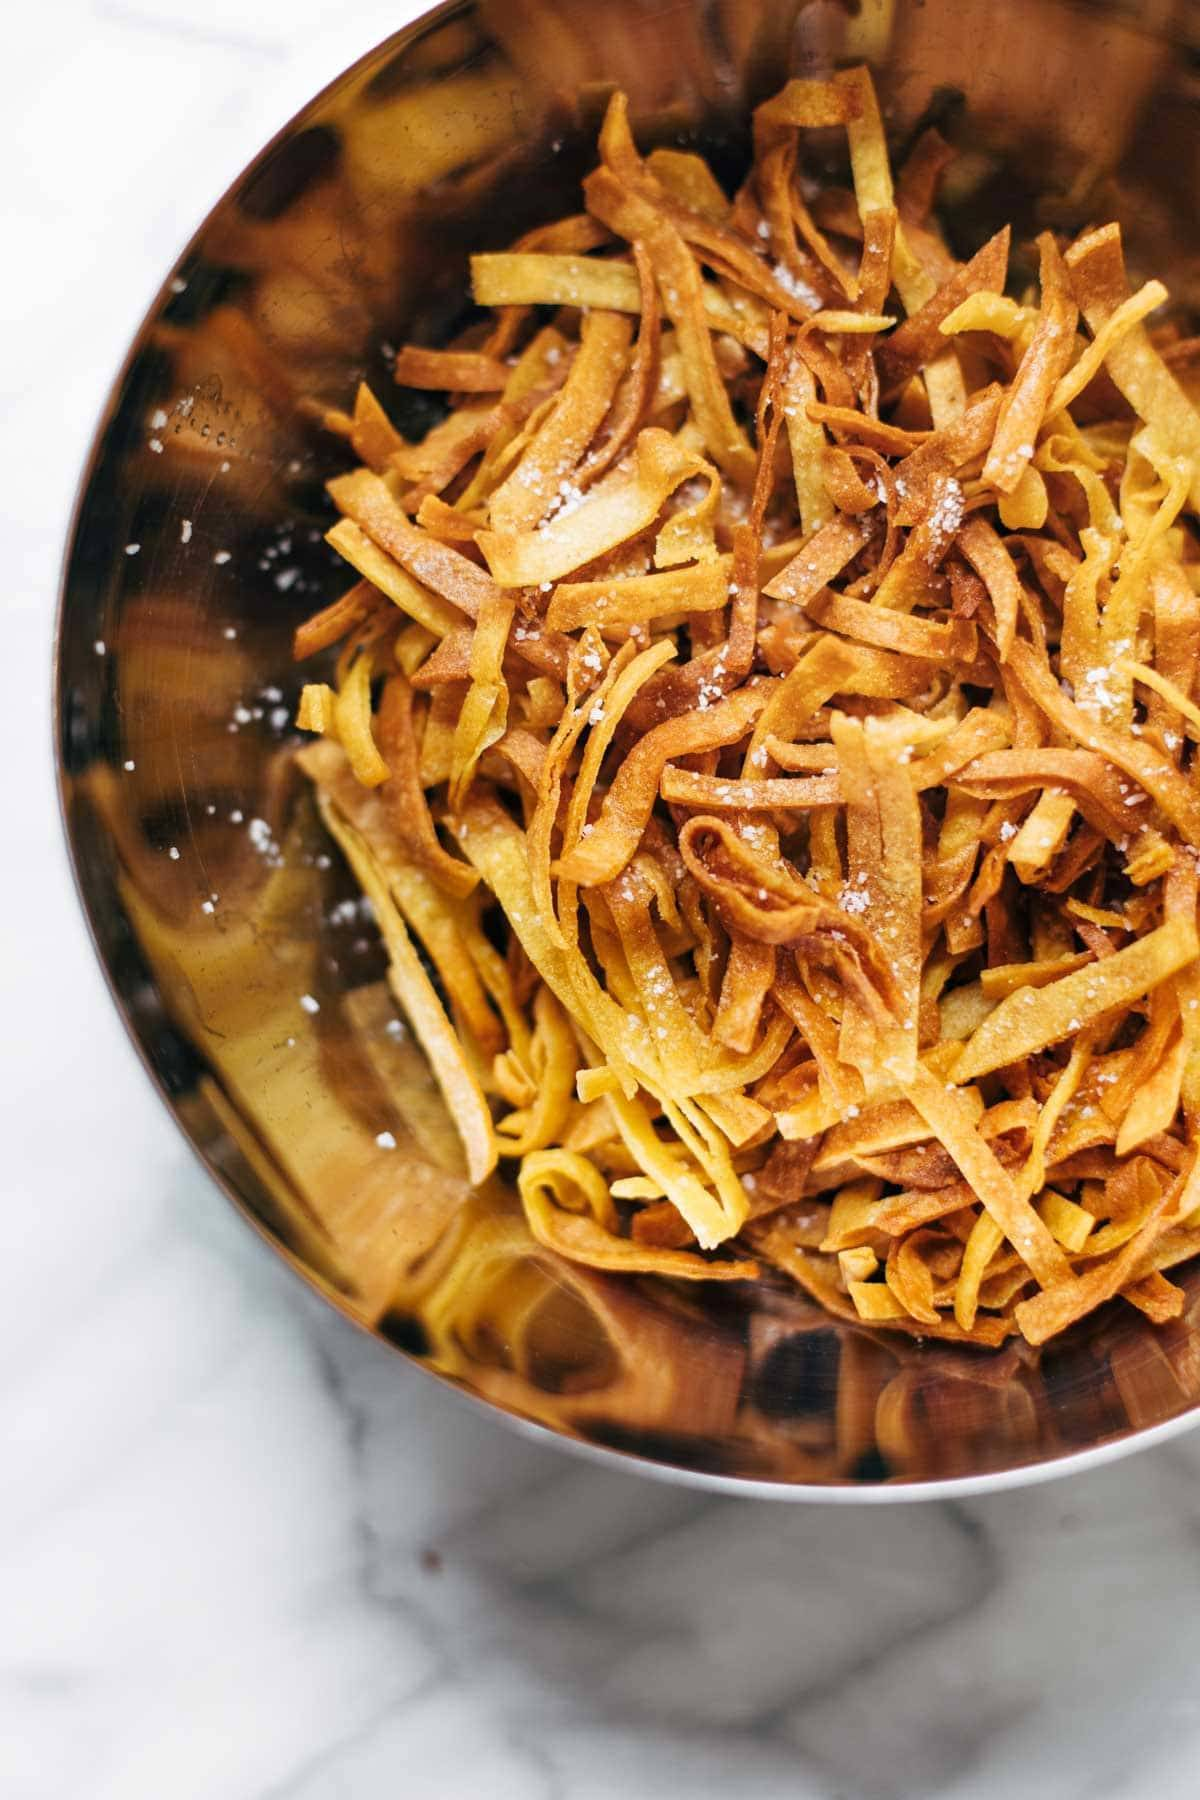 Fried tortilla strips in bowl.